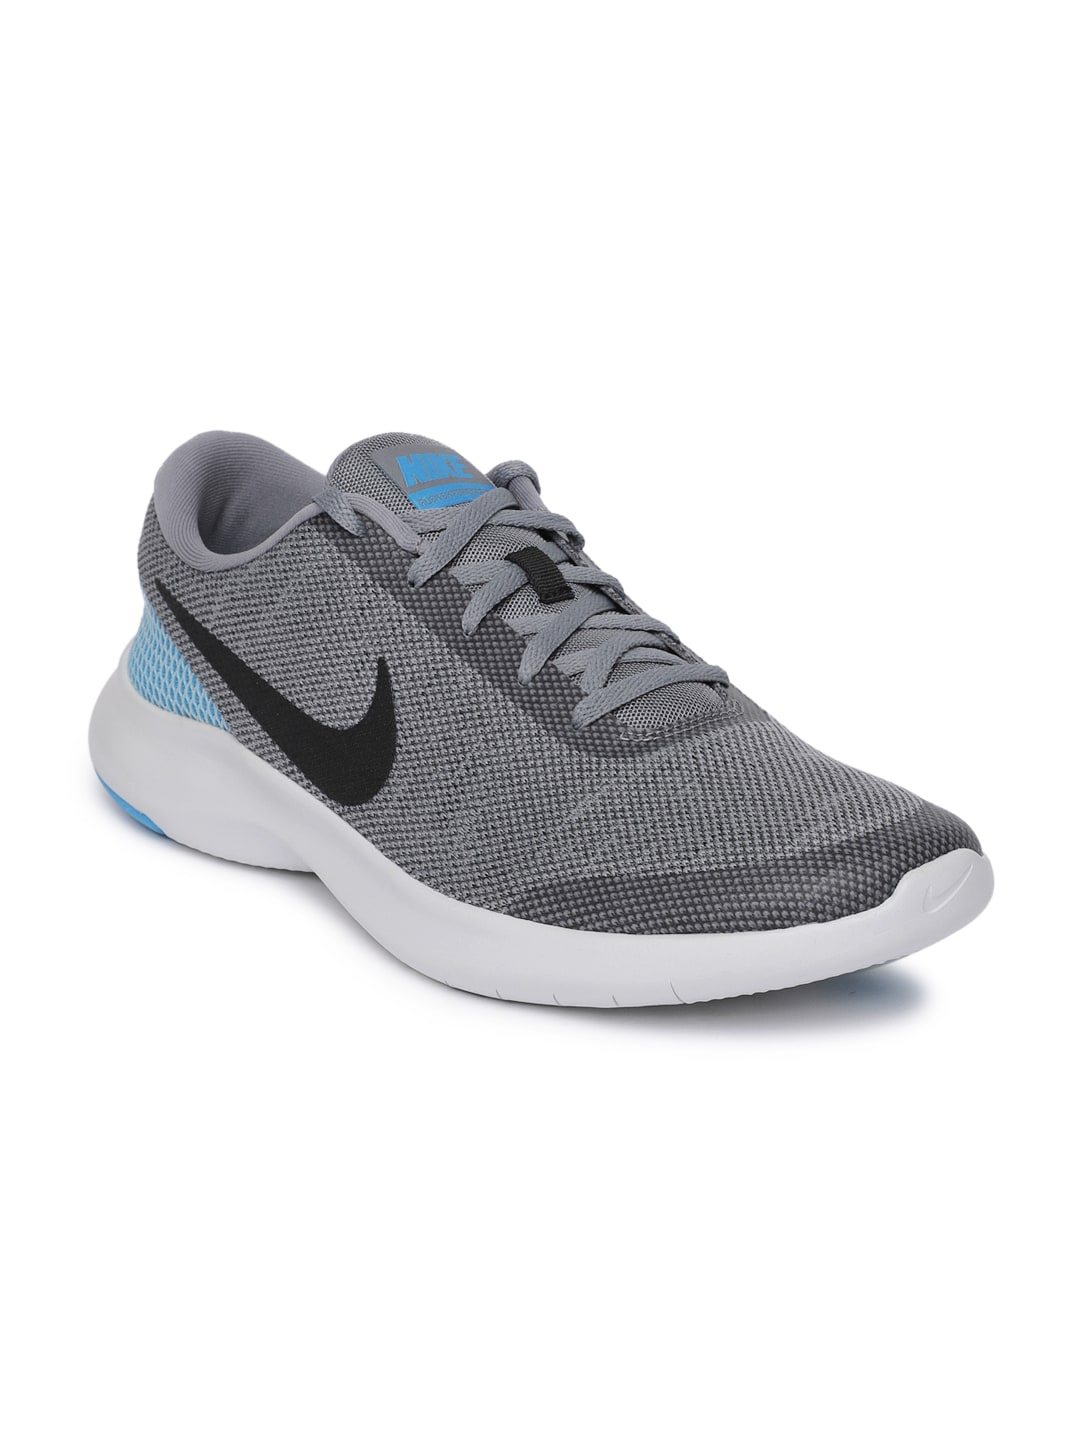 e08f043dd00 Nike - Shop for Nike Apparels Online in India